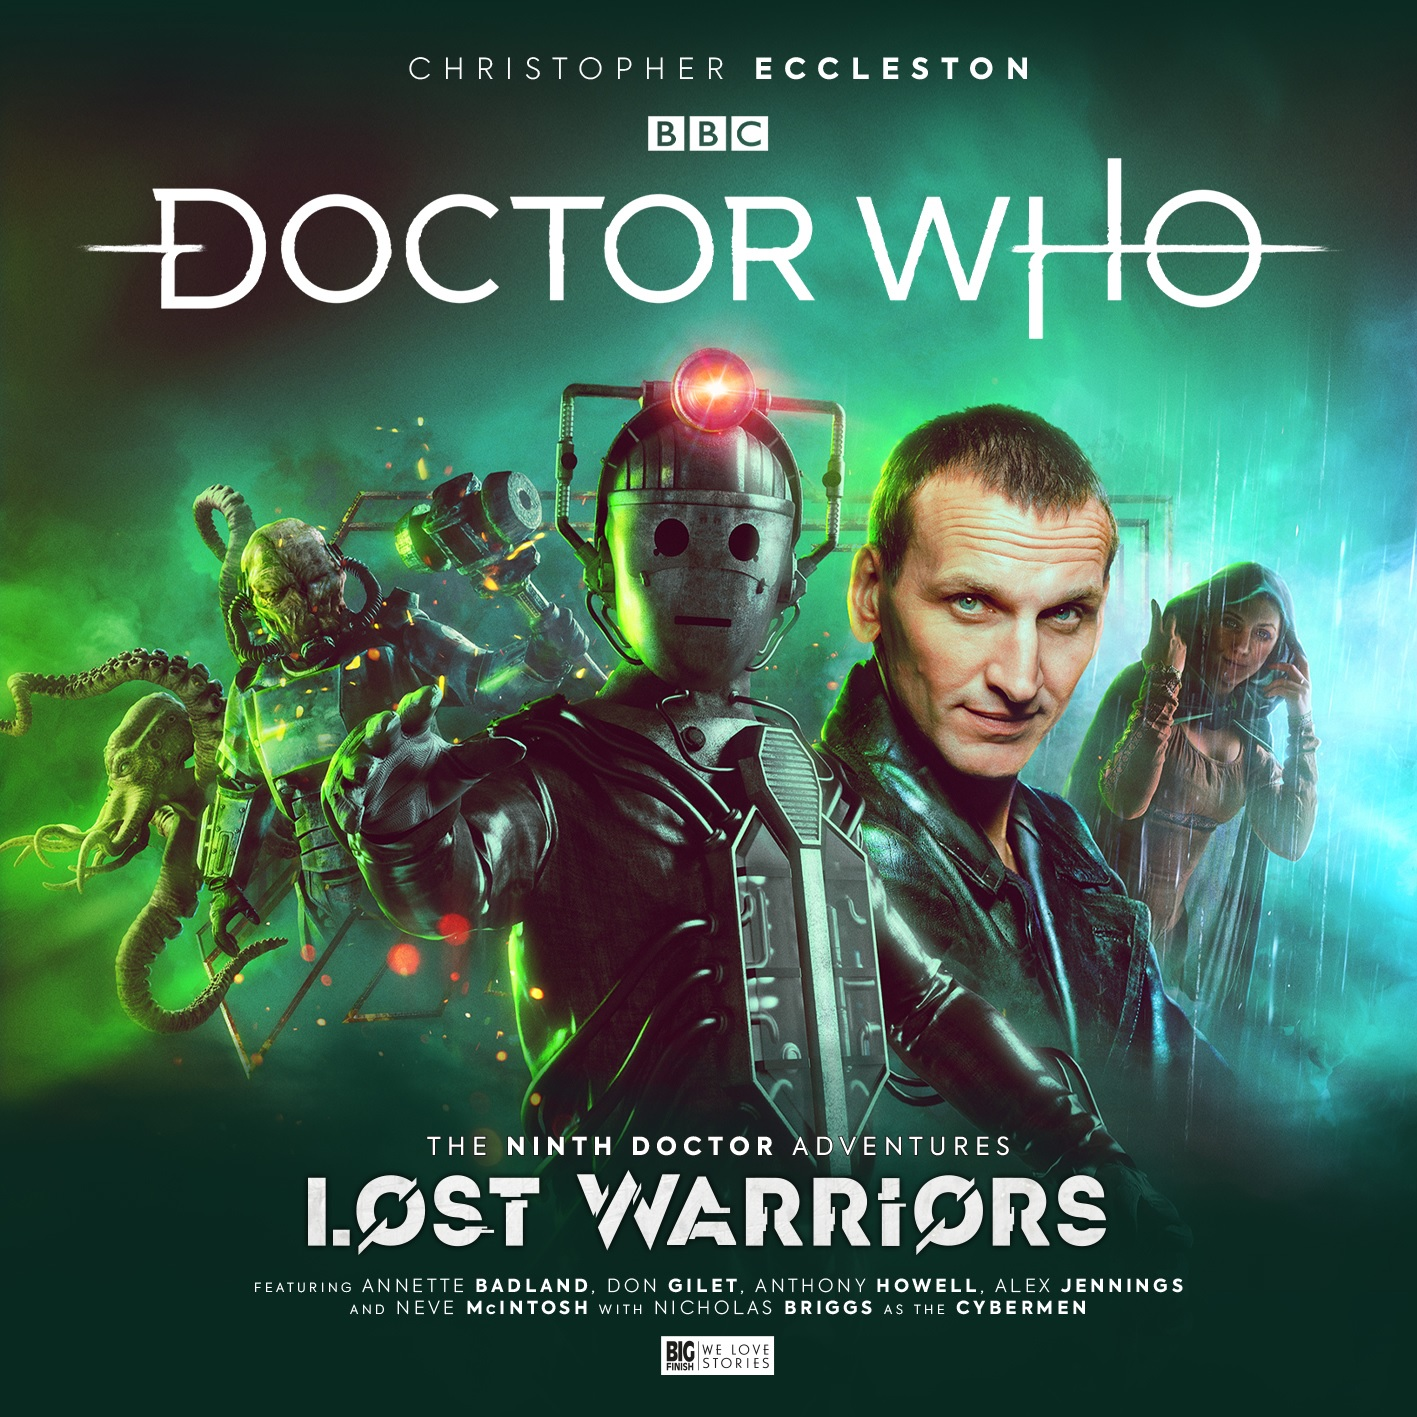 It's the Ninth Doctor vs. the Cybermen in Big Finish's Lost Warriors